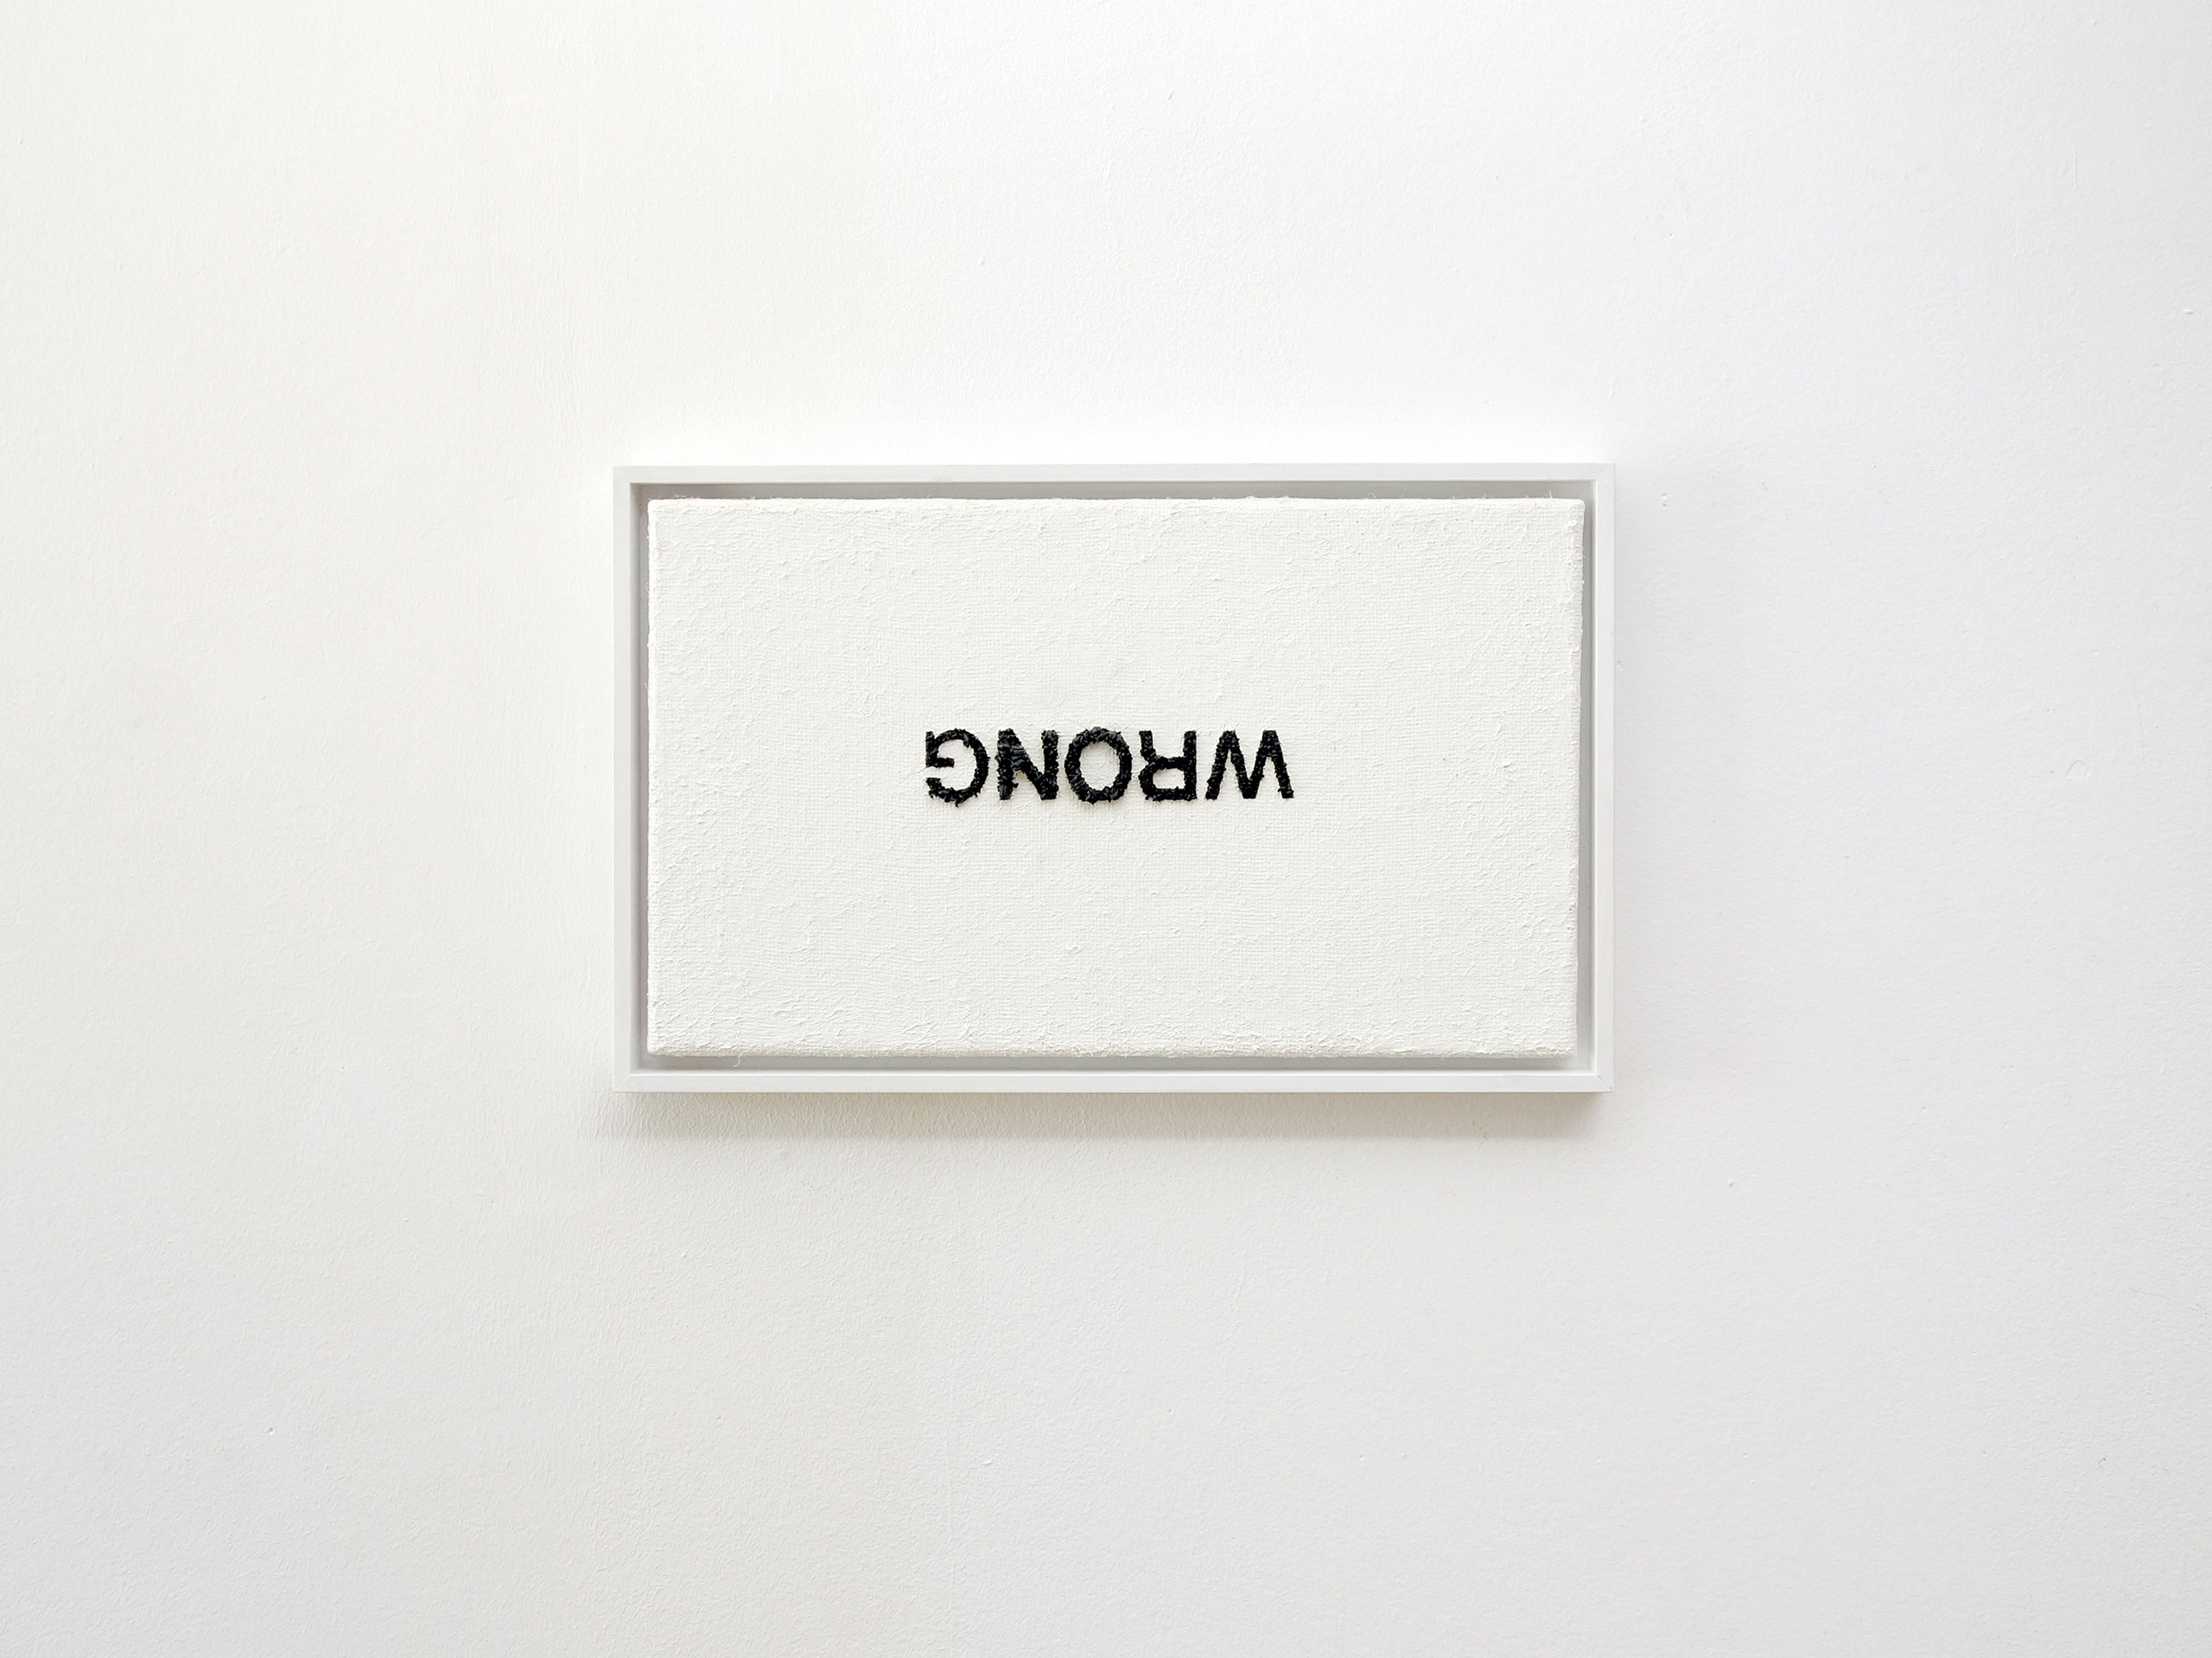 Anatol Knotek, no, 30 cm x 50 cm, acrylic on canvas (framed) © 2014.